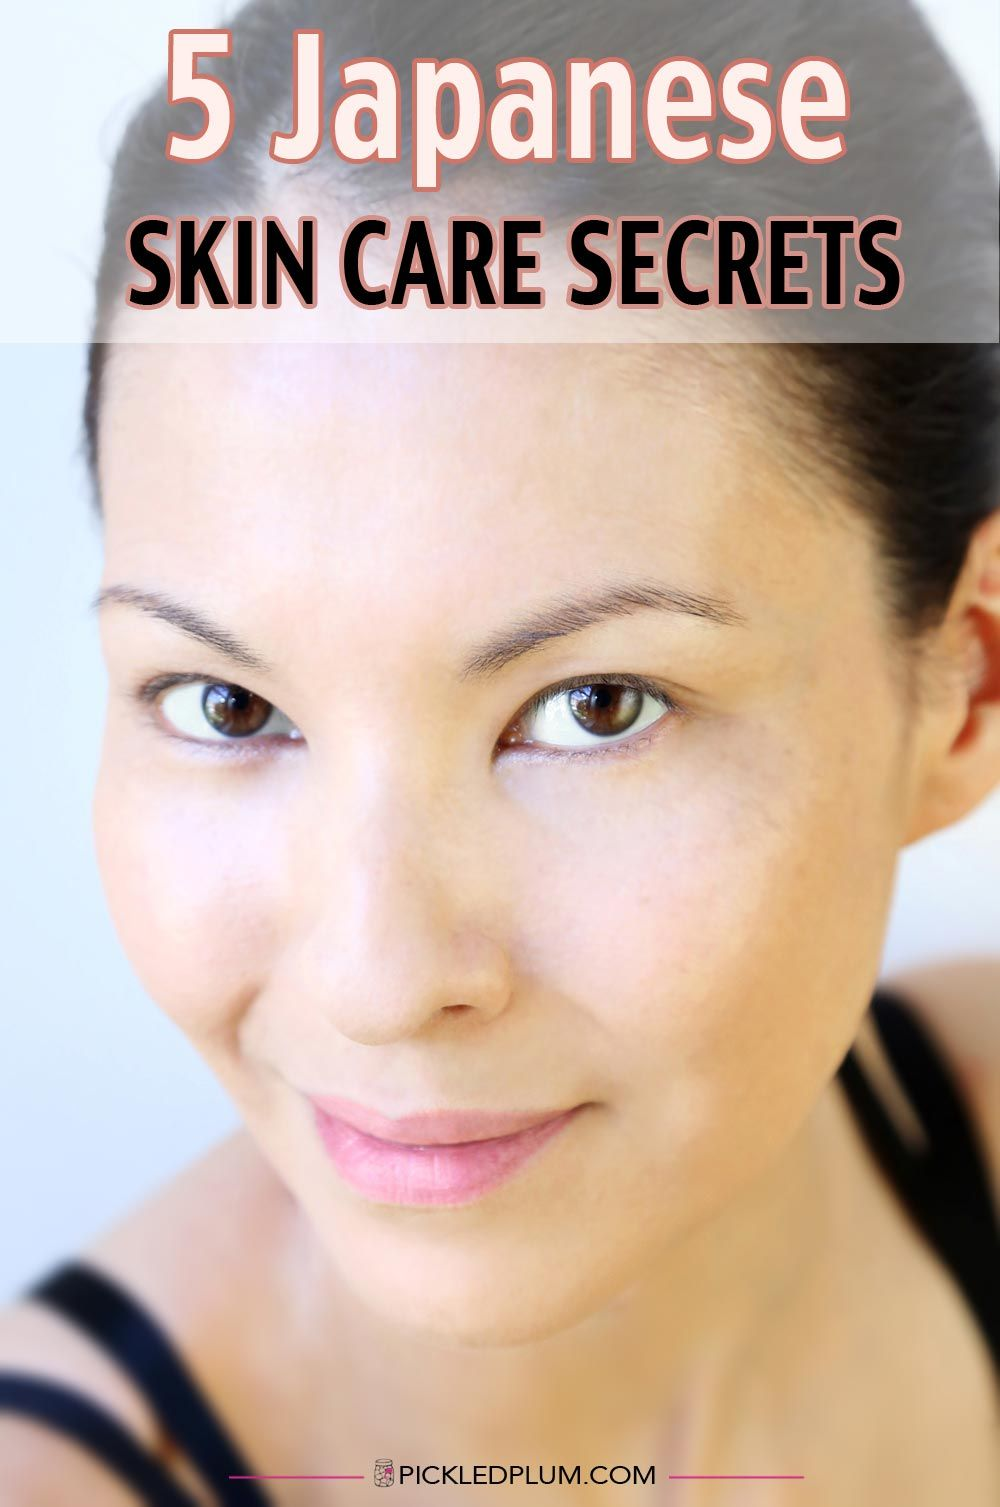 11 Japanese Skin Care Secrets That Will Make You Look Younger